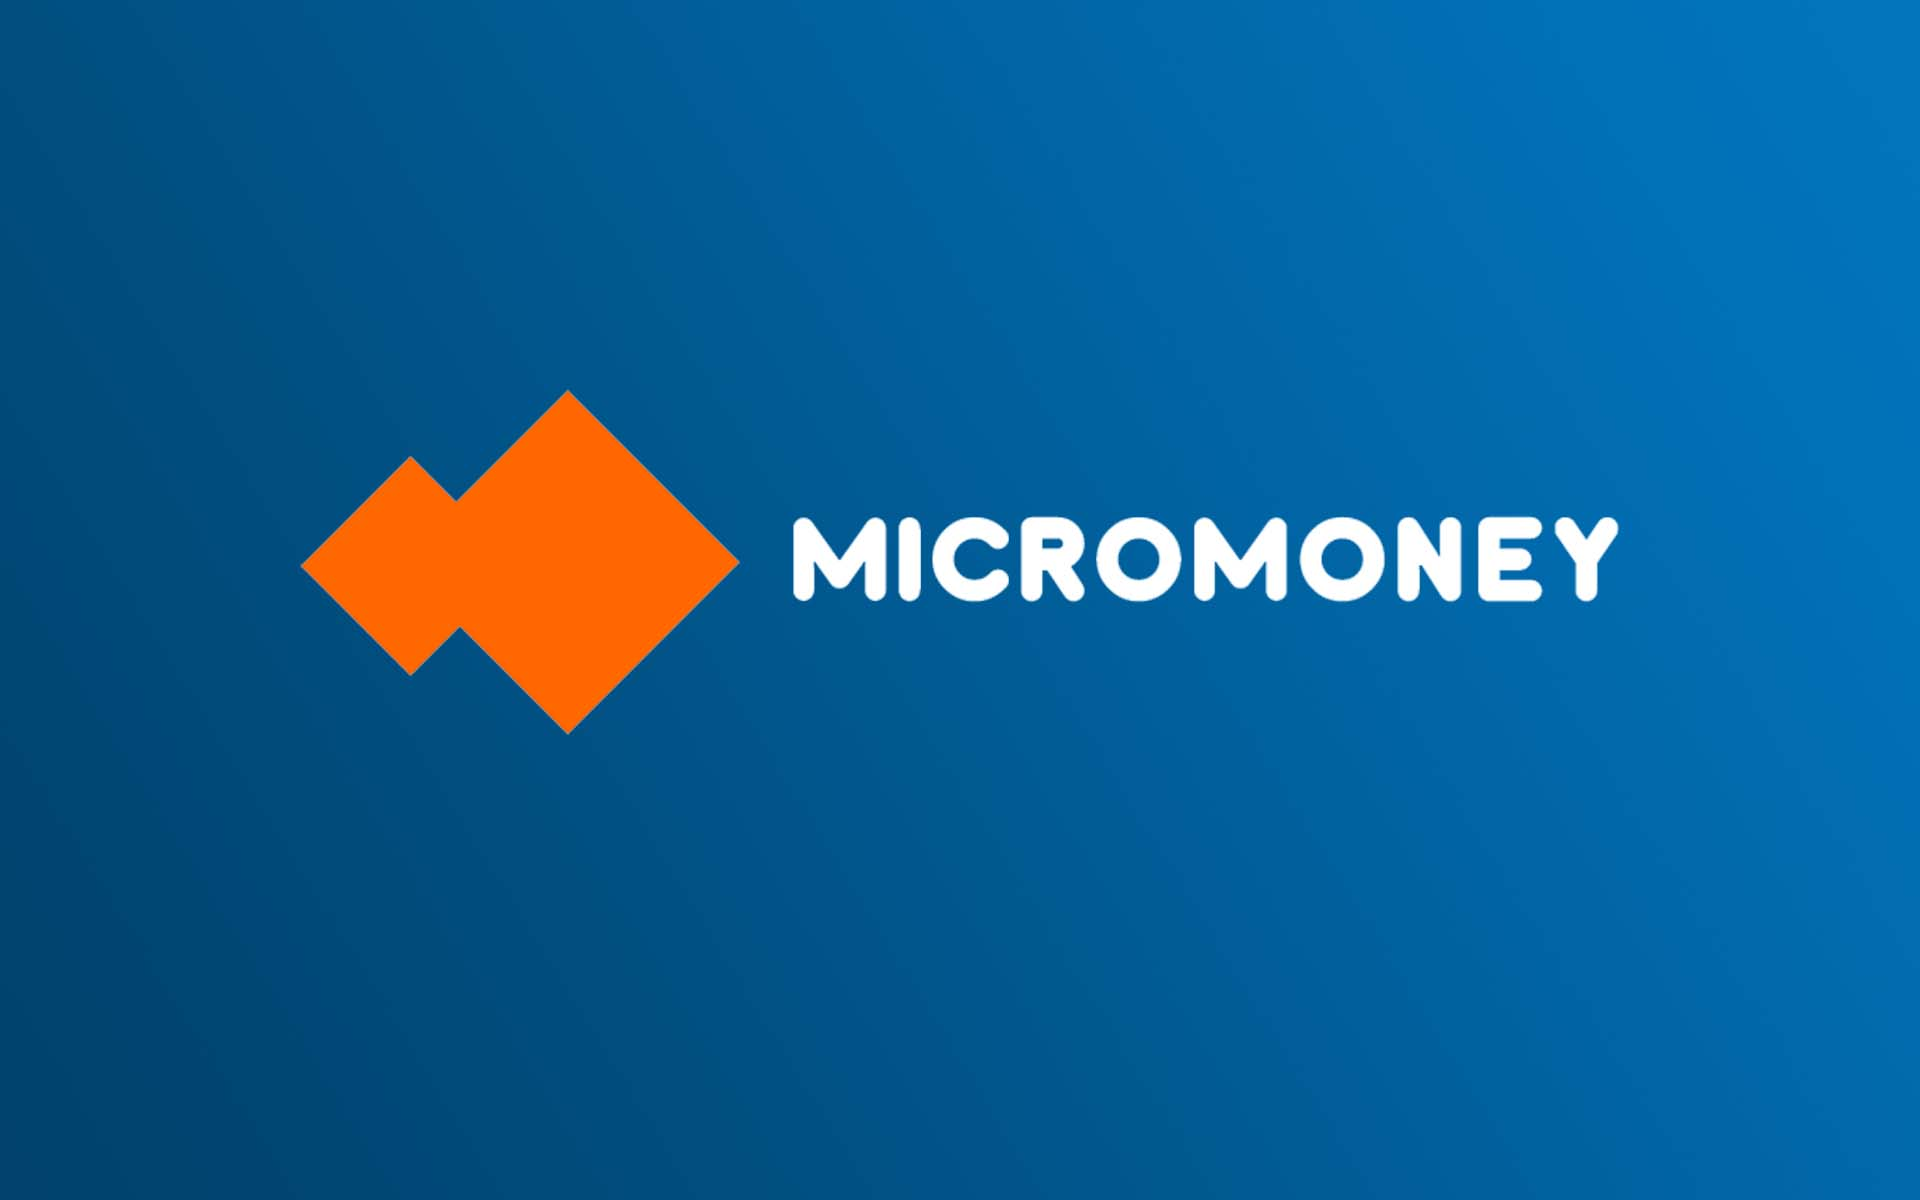 MicroMoney's $30M Token Distribution Campaign Generates $1M in 12 Hours